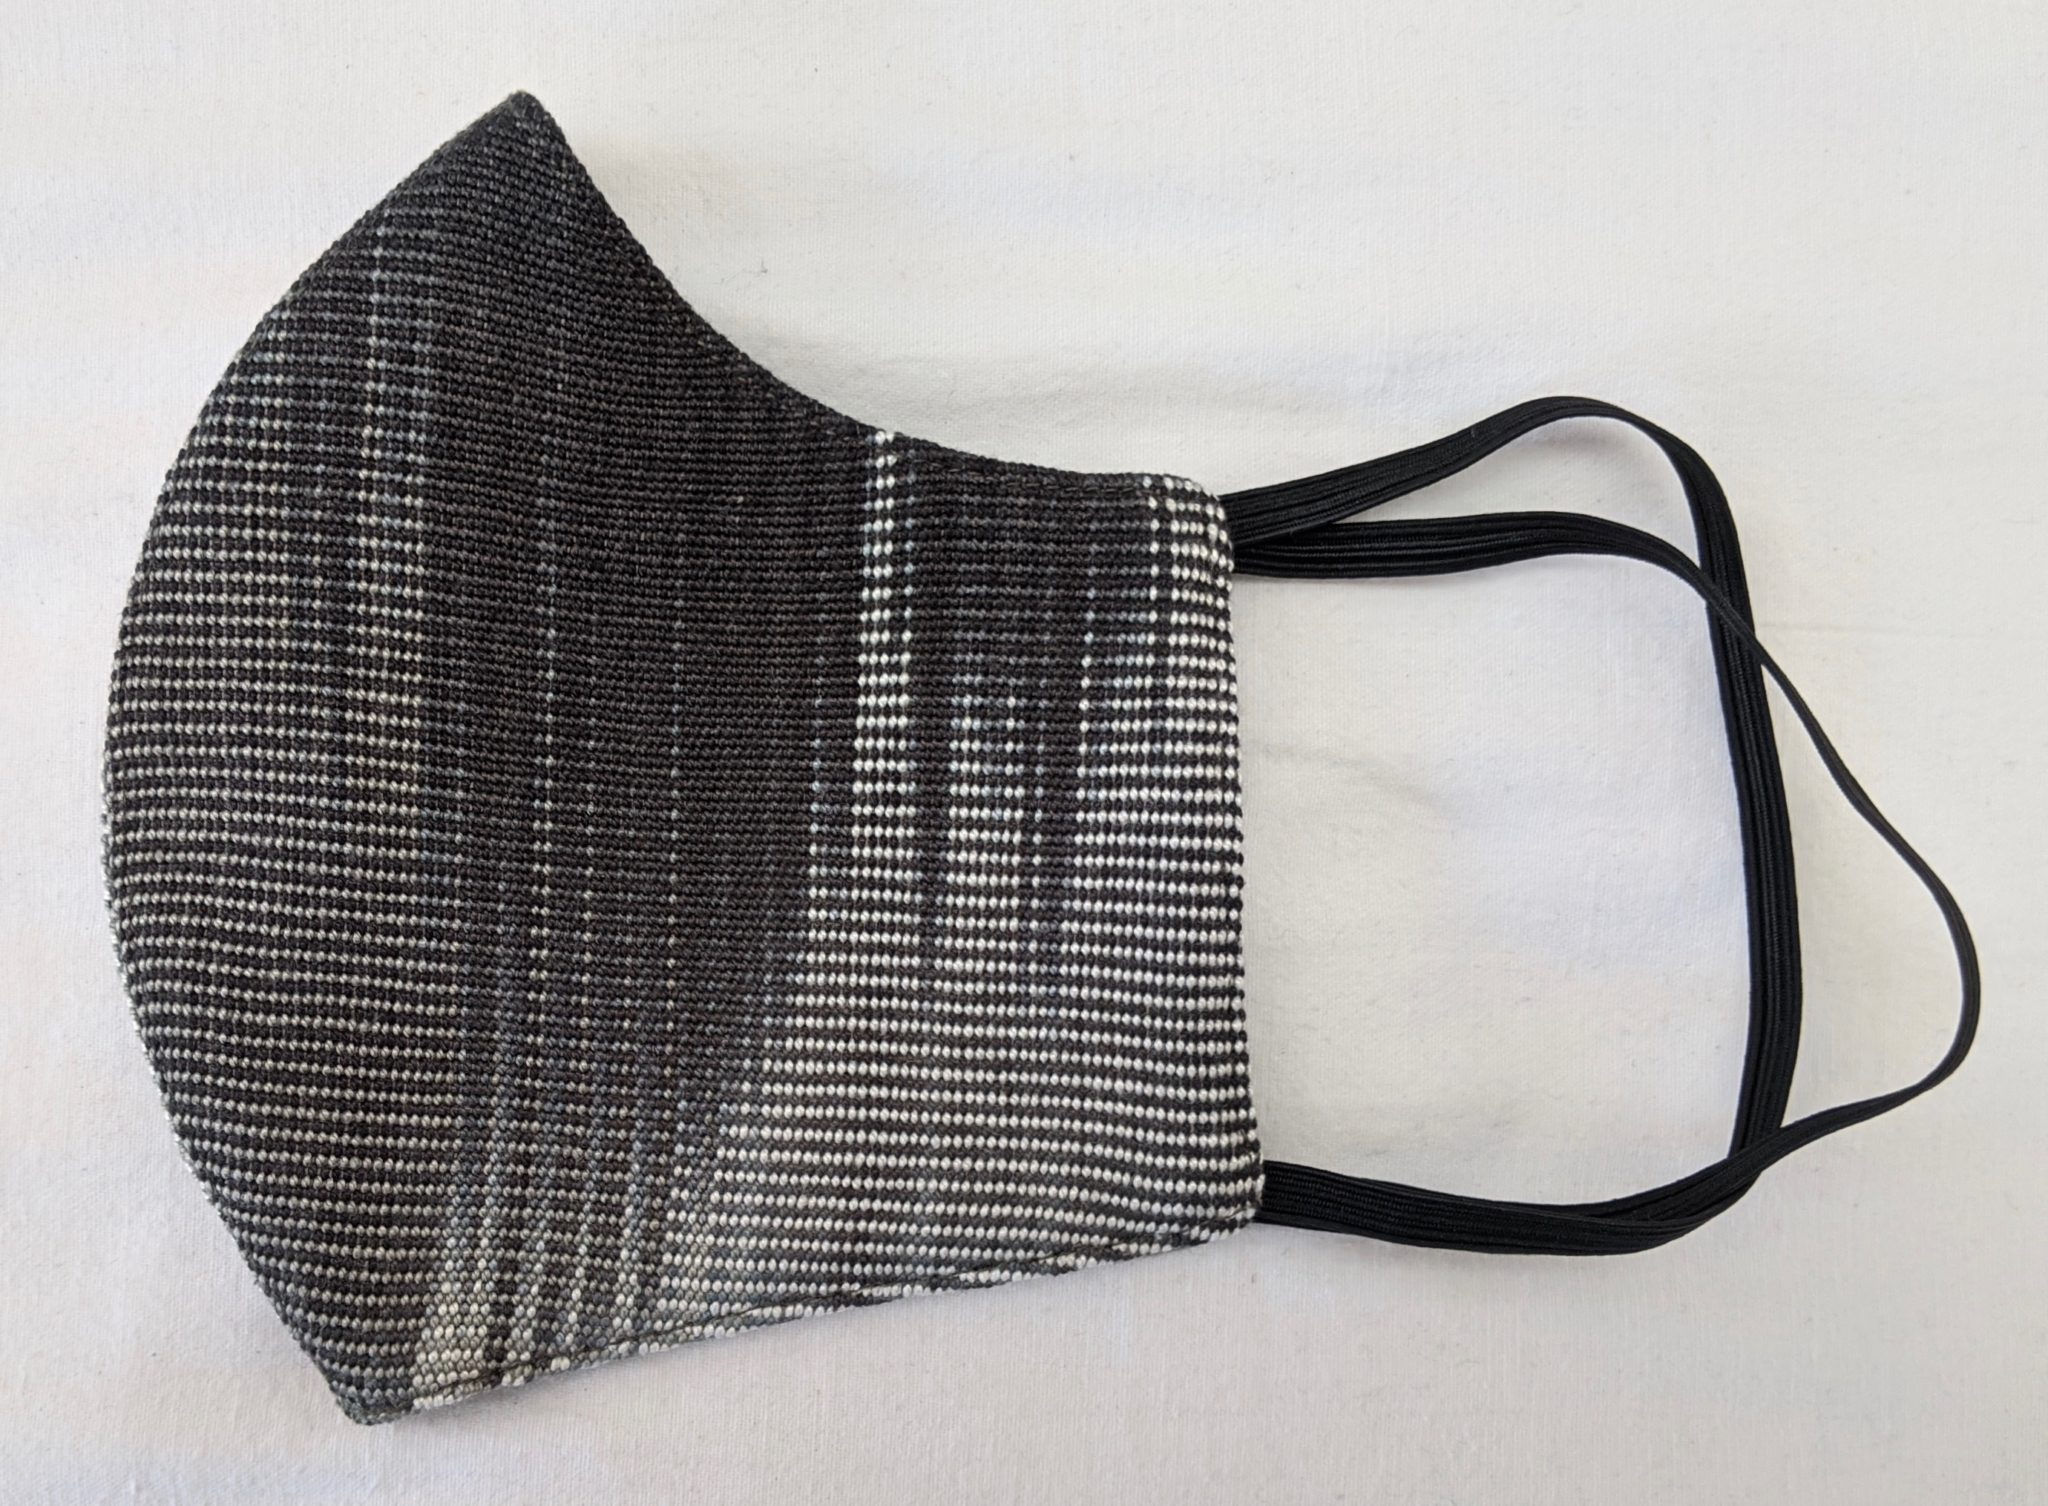 Handwoven Lightweight Bamboo Face Mask with Elastic Behind Ears - Black, White, Grays